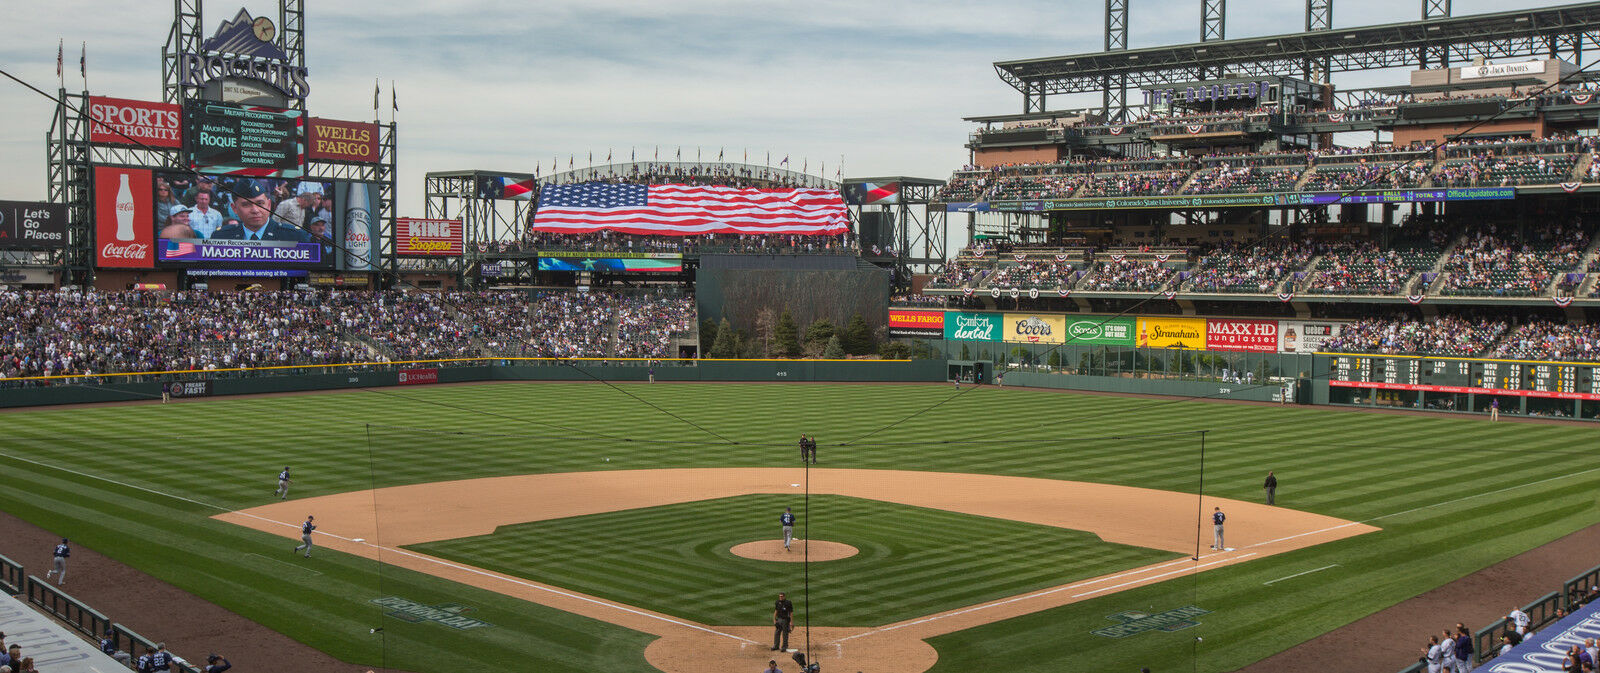 San Diego Padres at Colorado Rockies